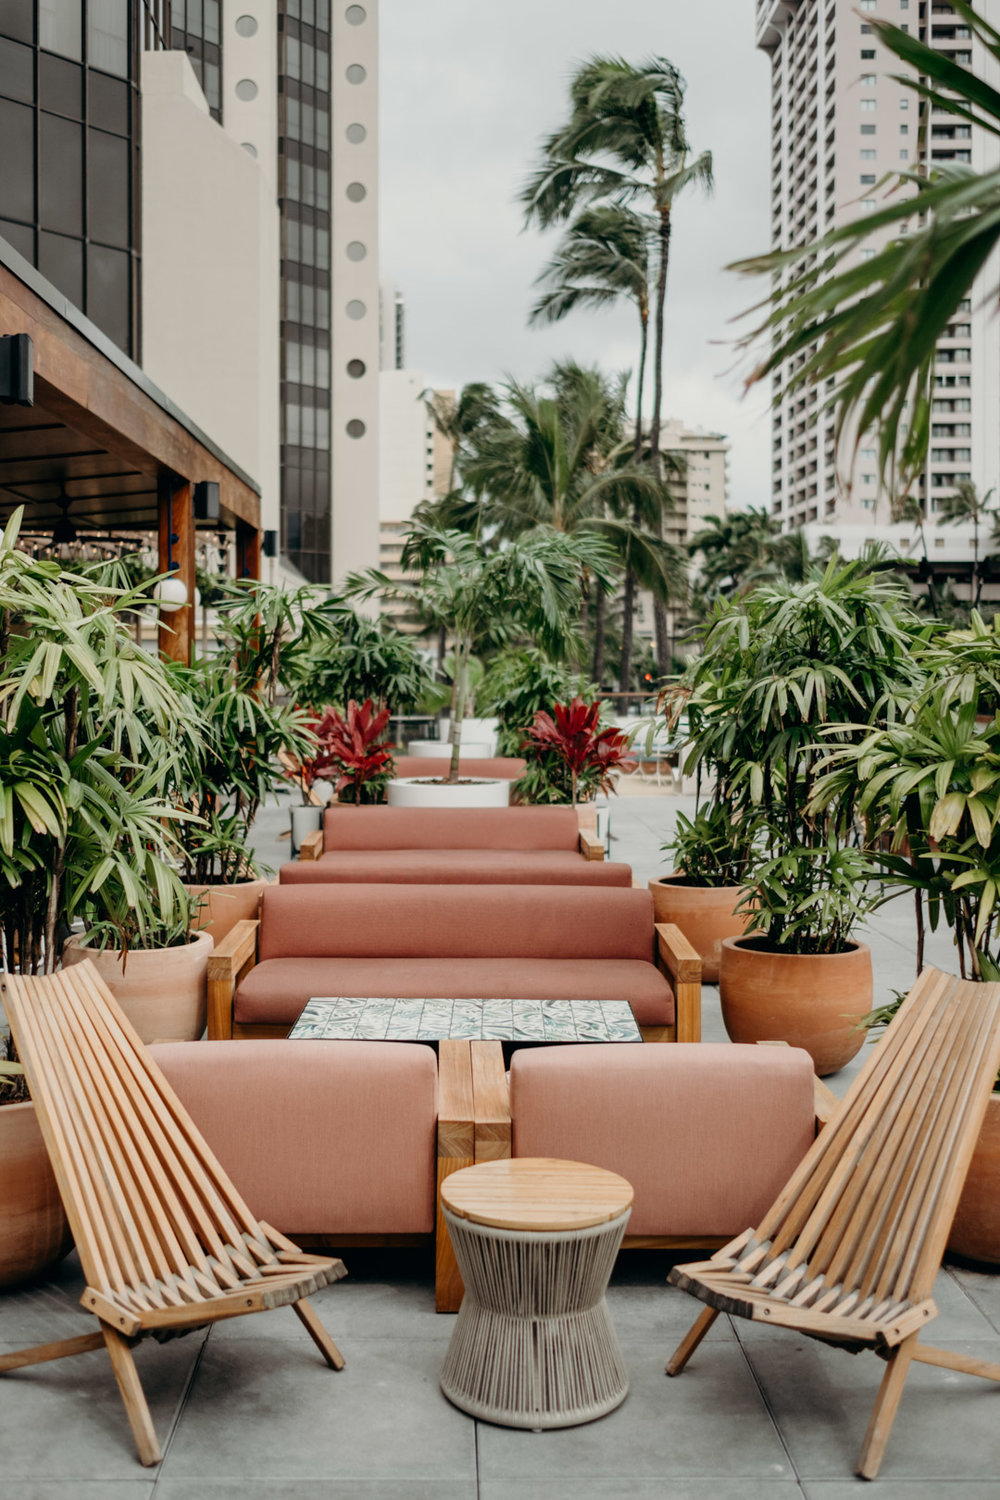 Visit Honolulu_The Laylow Hotel_AliHapper_Photos16.jpg